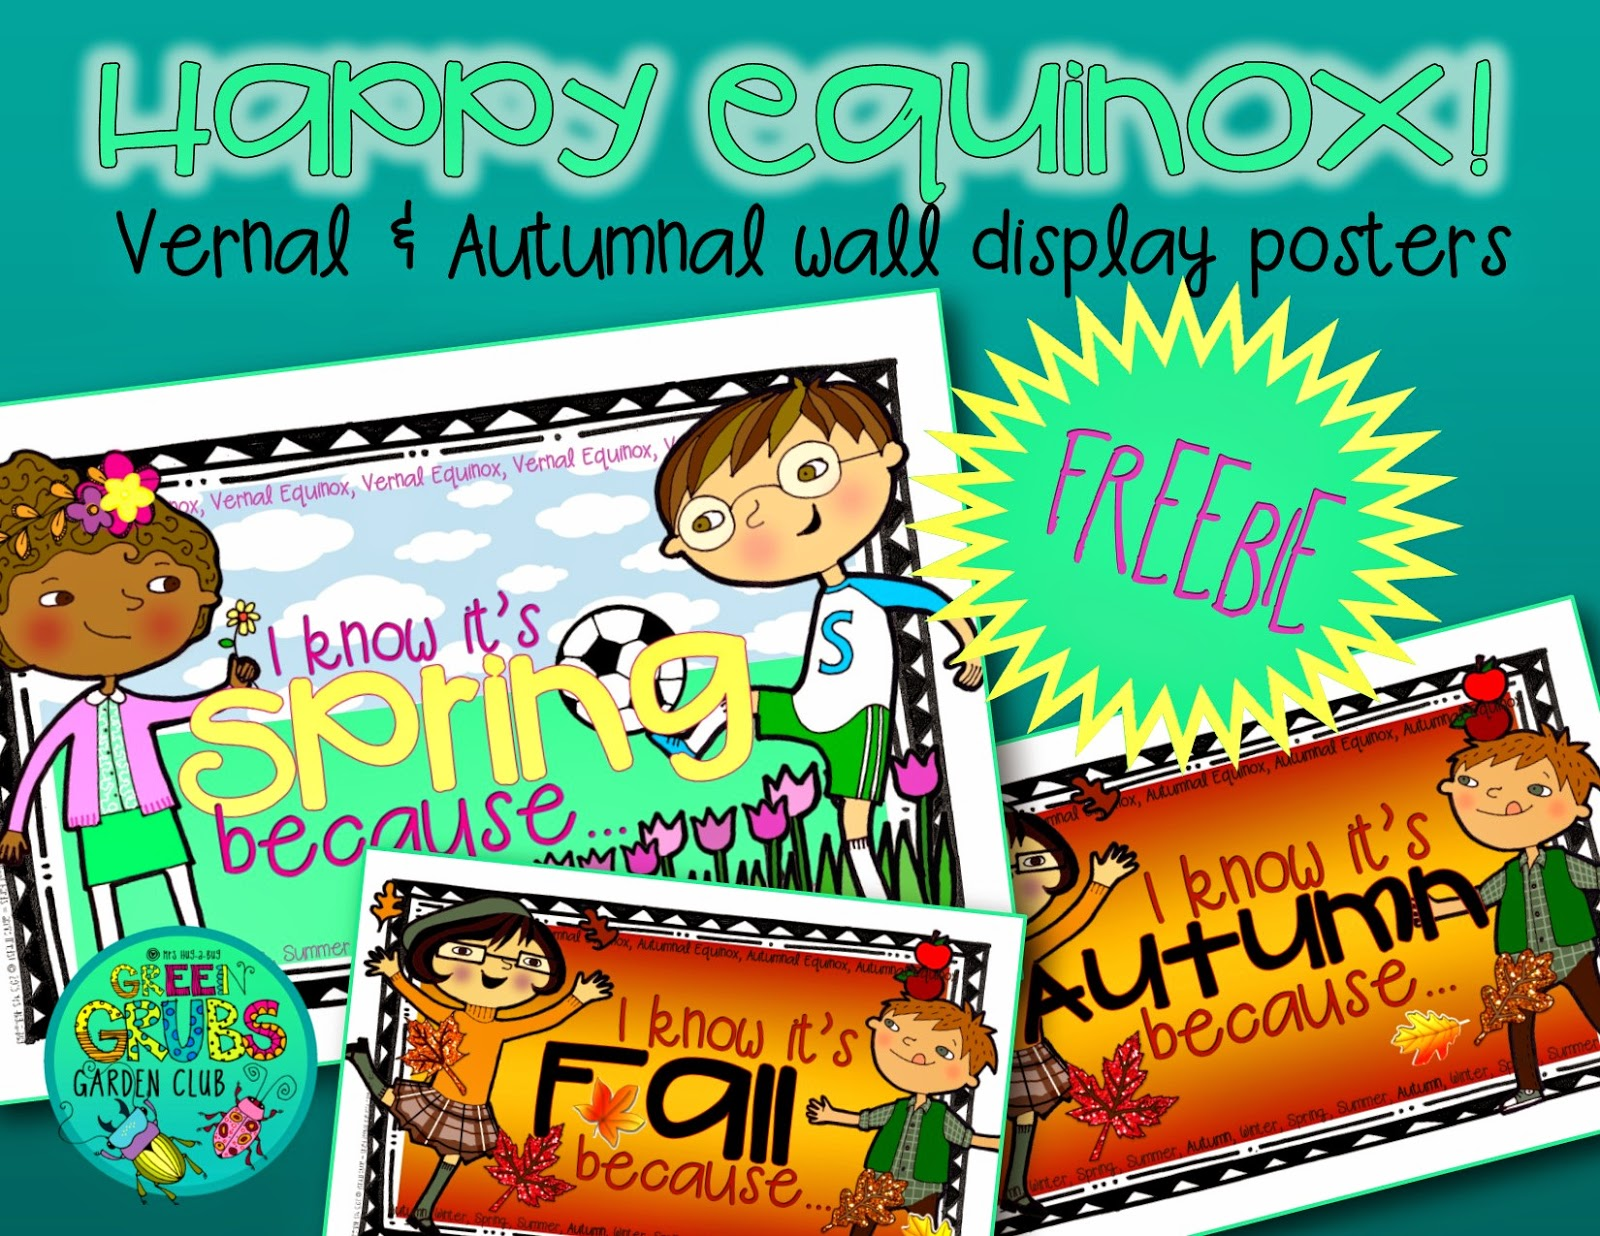 Happy Equinox! (FREE Vernal & Autumnal wall display posters)